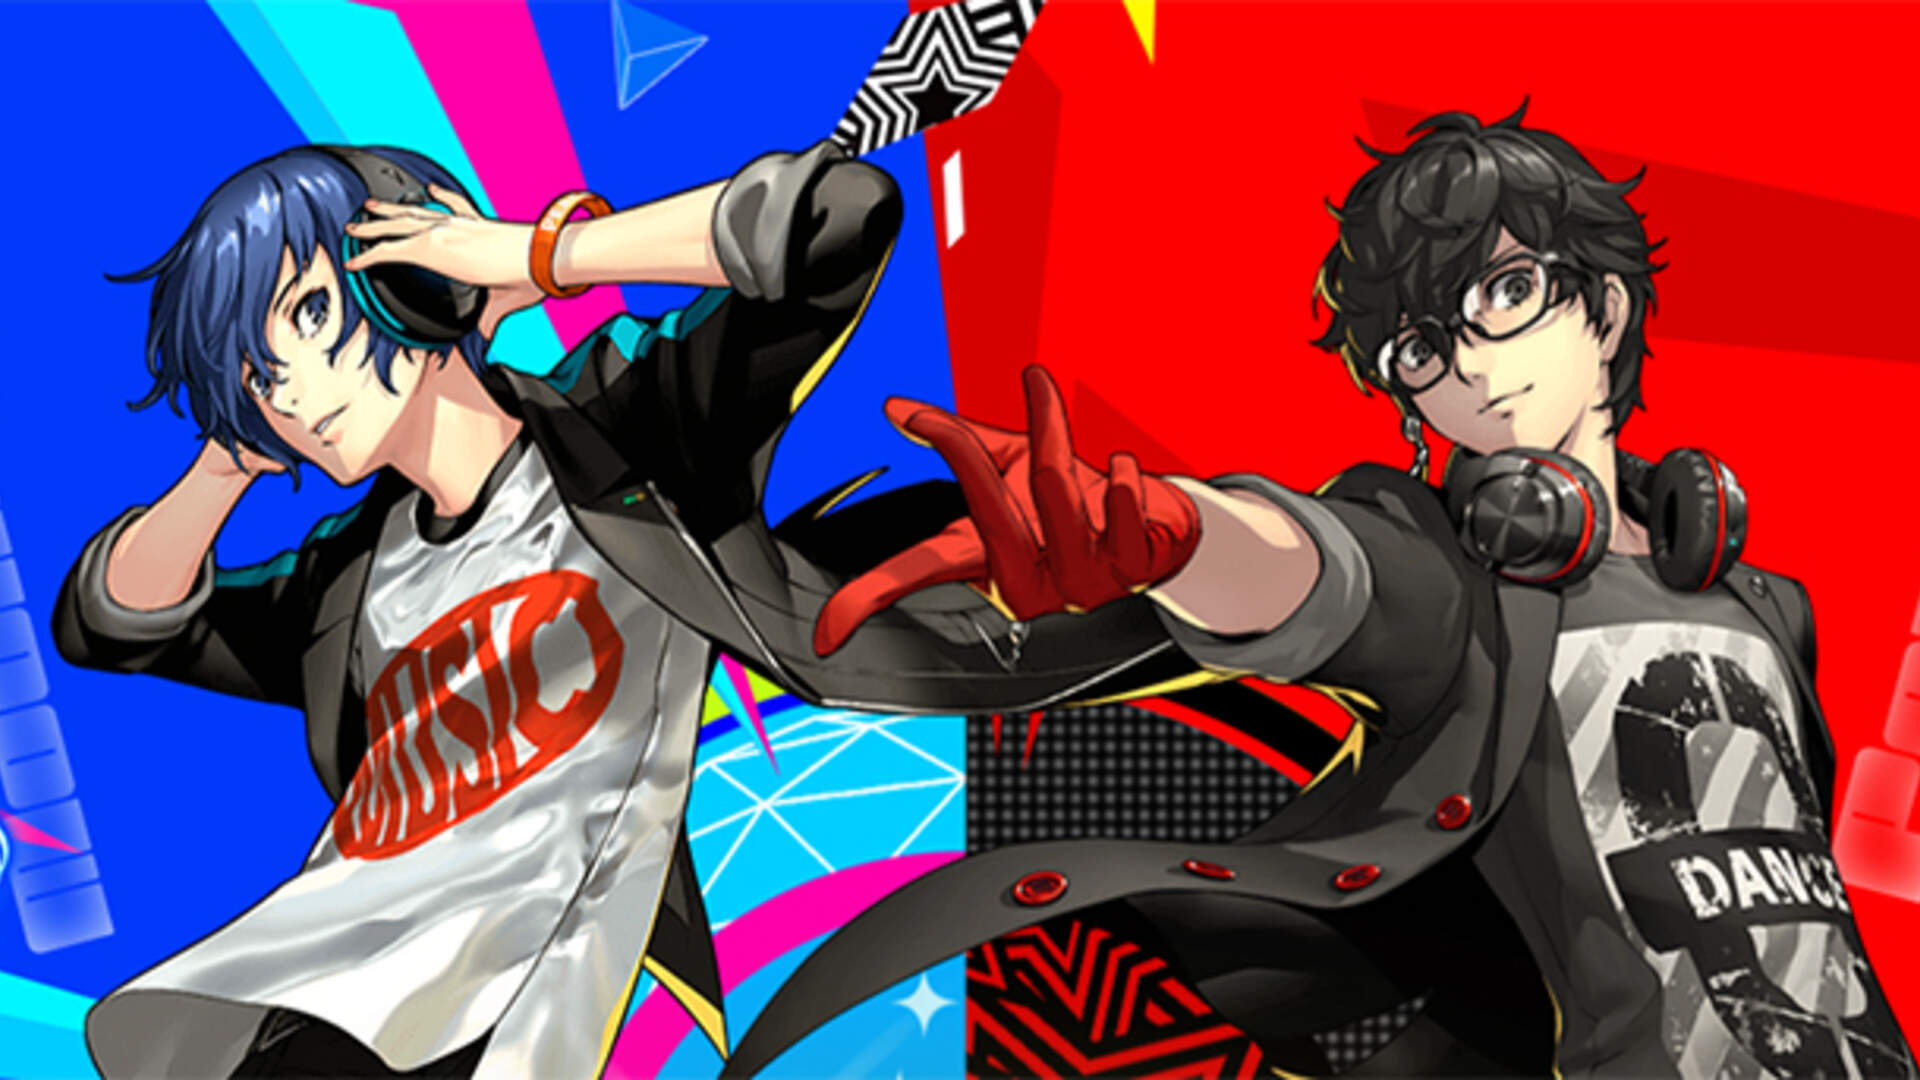 Persona 3 Dancing In Moonlight And Persona 5 Dancing In